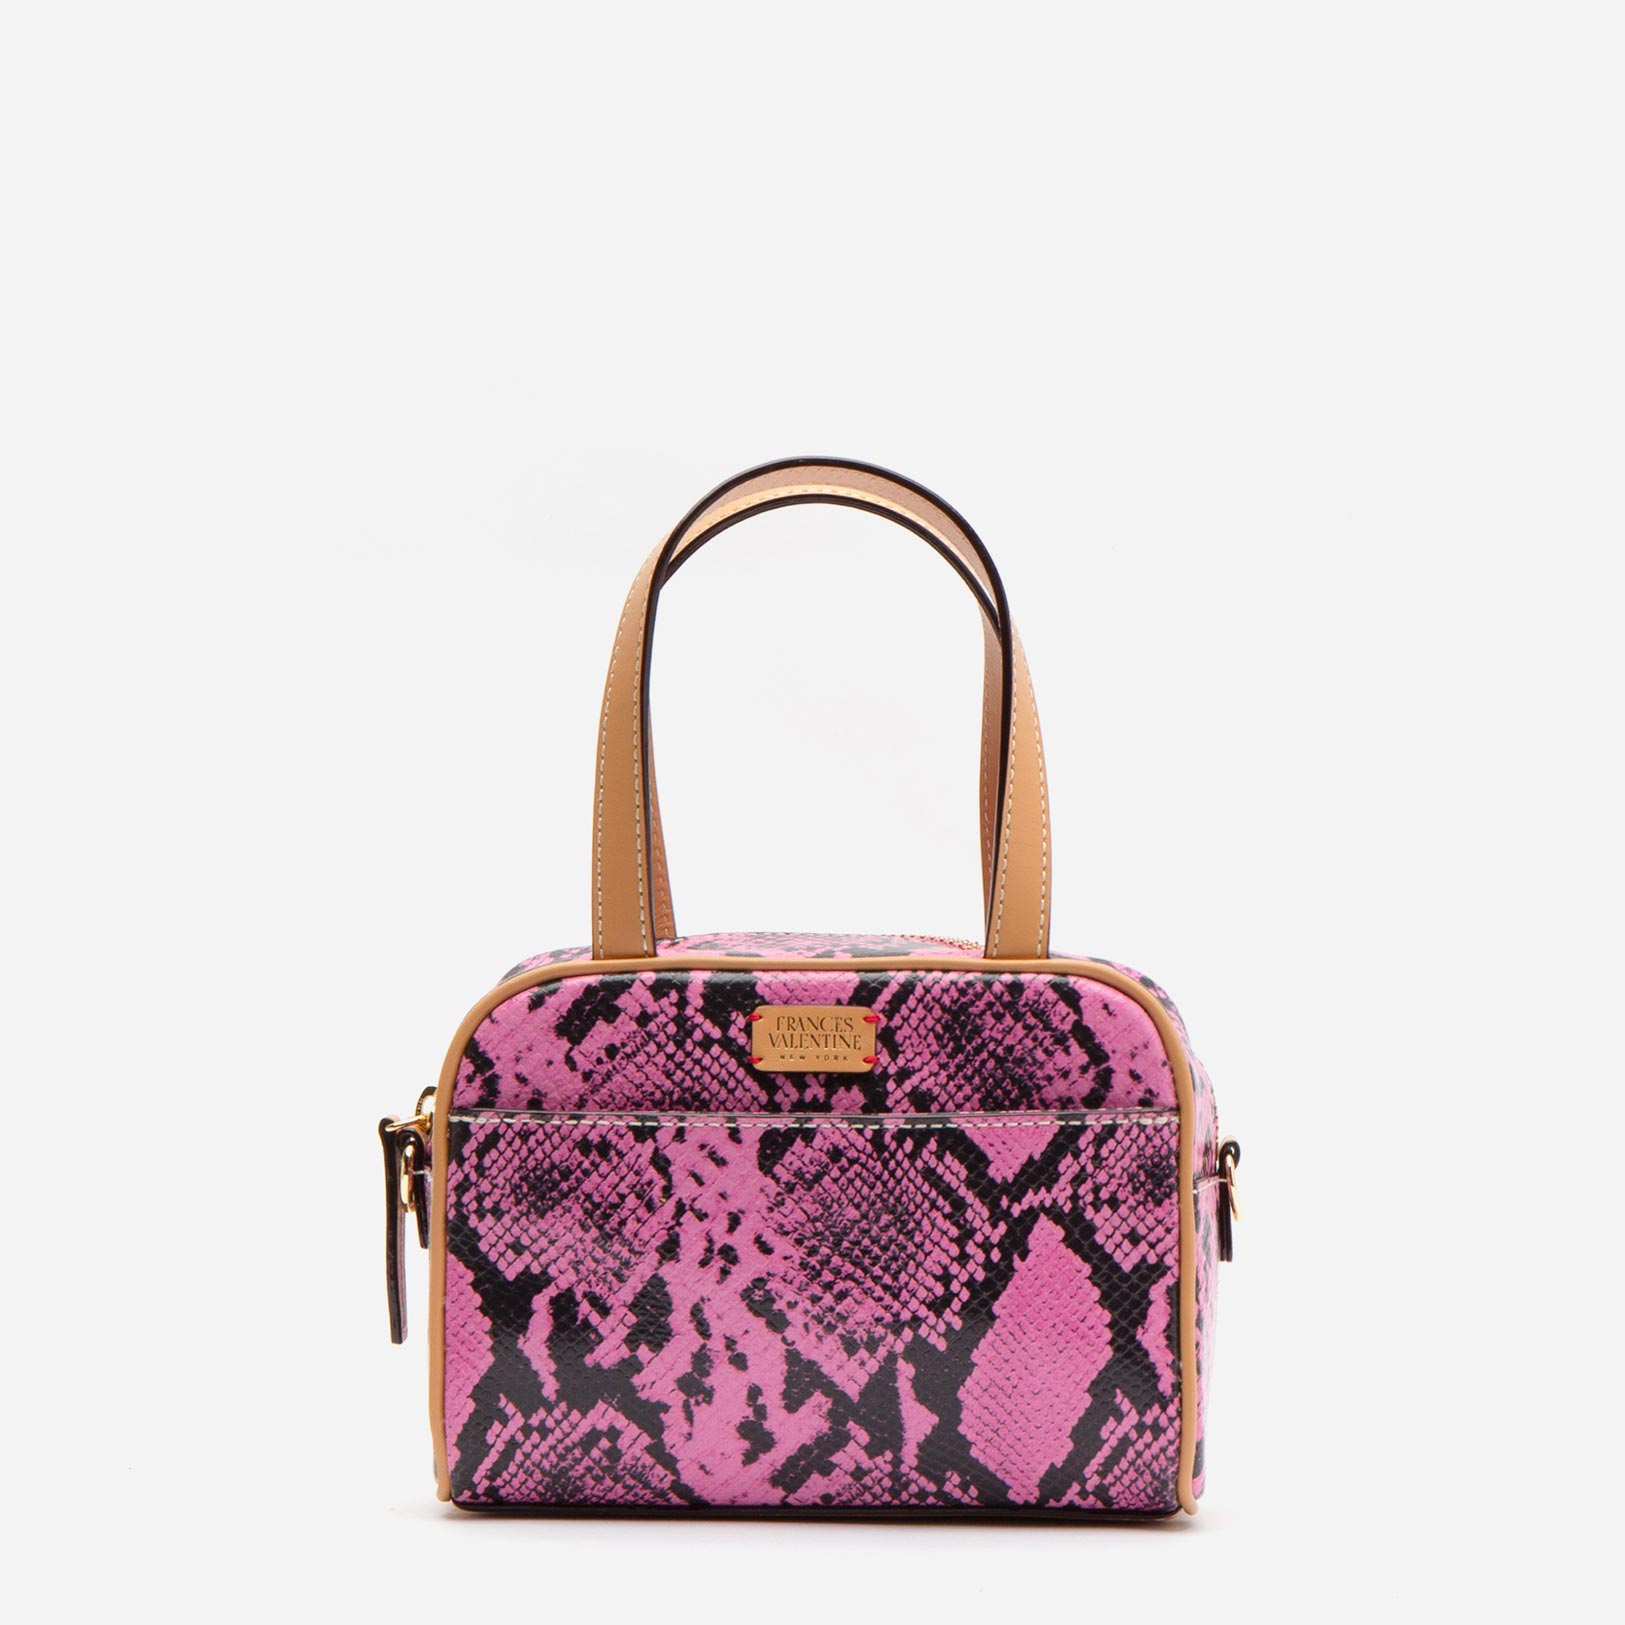 Baby Tote Snake Embossed Leather Pink - Frances Valentine